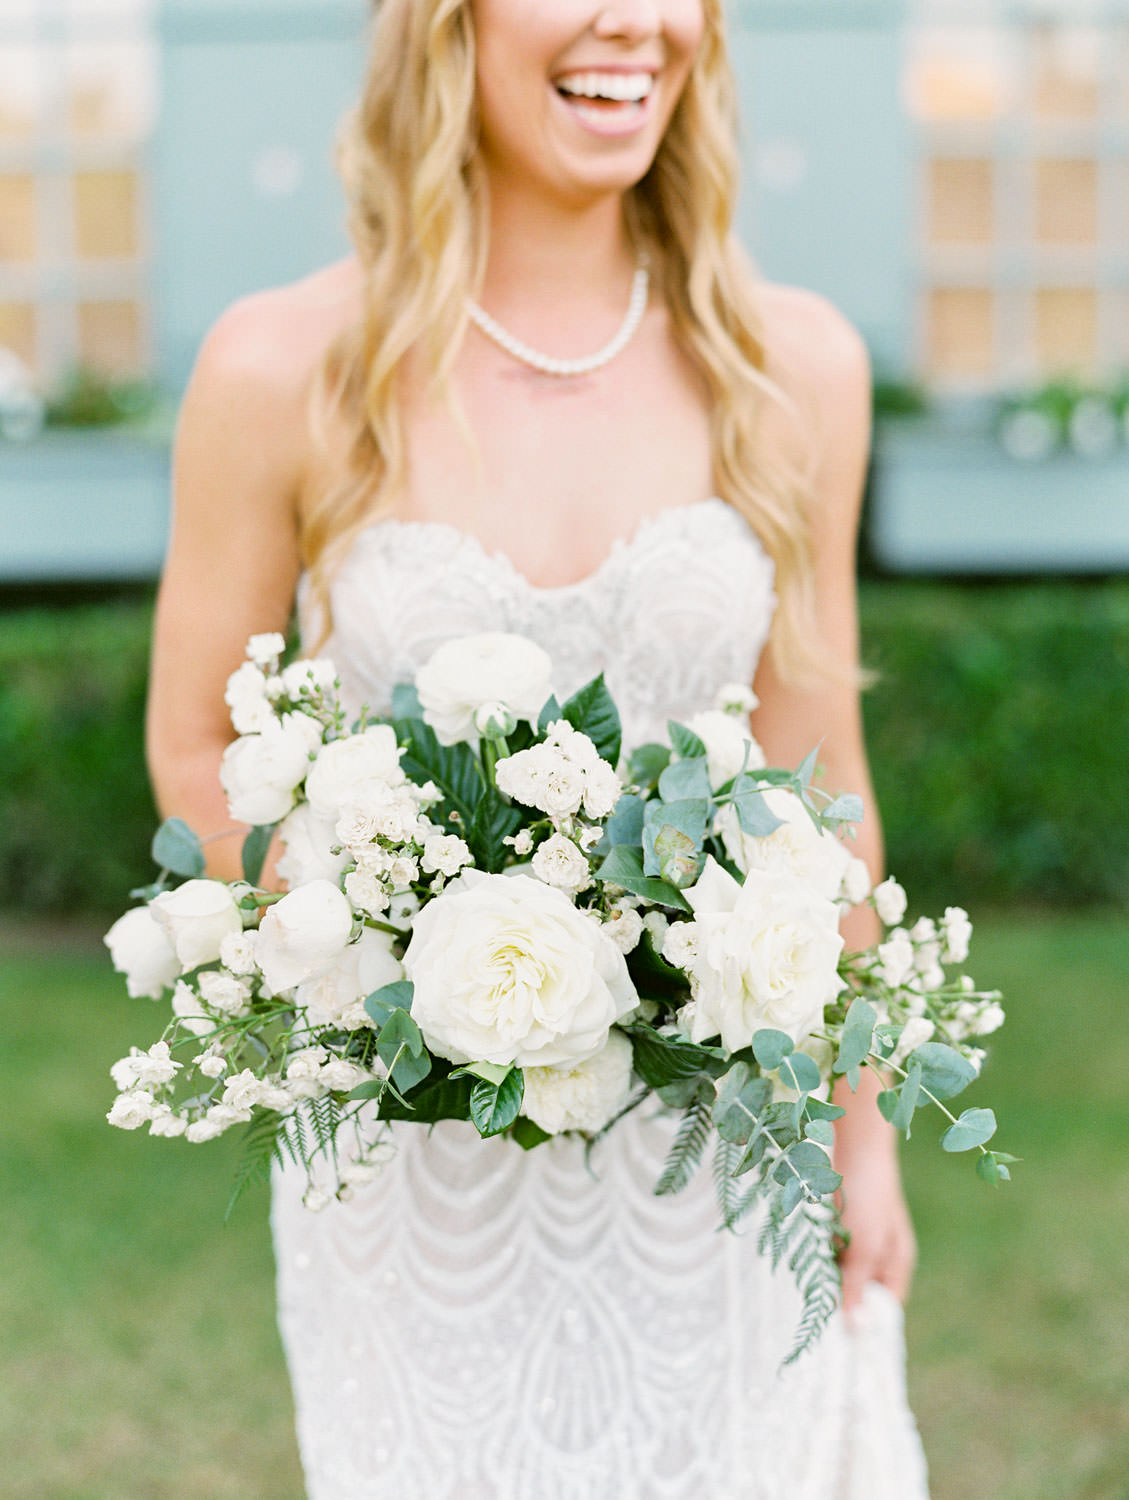 Bride shot on film in front of an ivy-covered building with blue shutters. Bride wearing a Galia Lahav Gala gown with a sweetheart neckline carrying an ivory and green bouquet. Del Mar Country Club Wedding by Cavin Elizabeth Photography